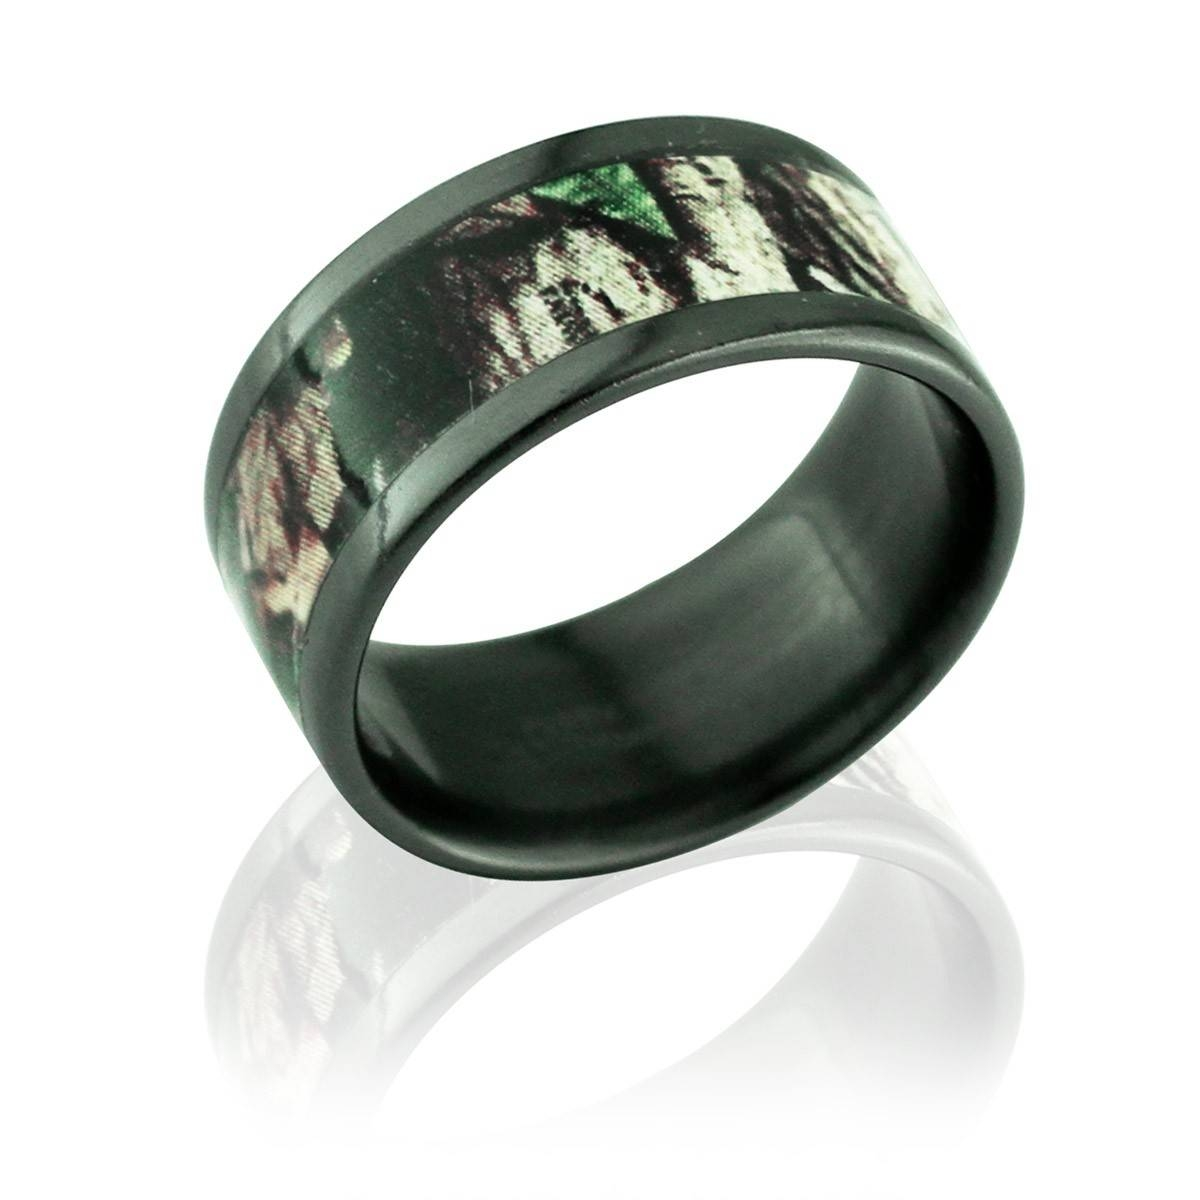 91 Camo Wedding Band For Him